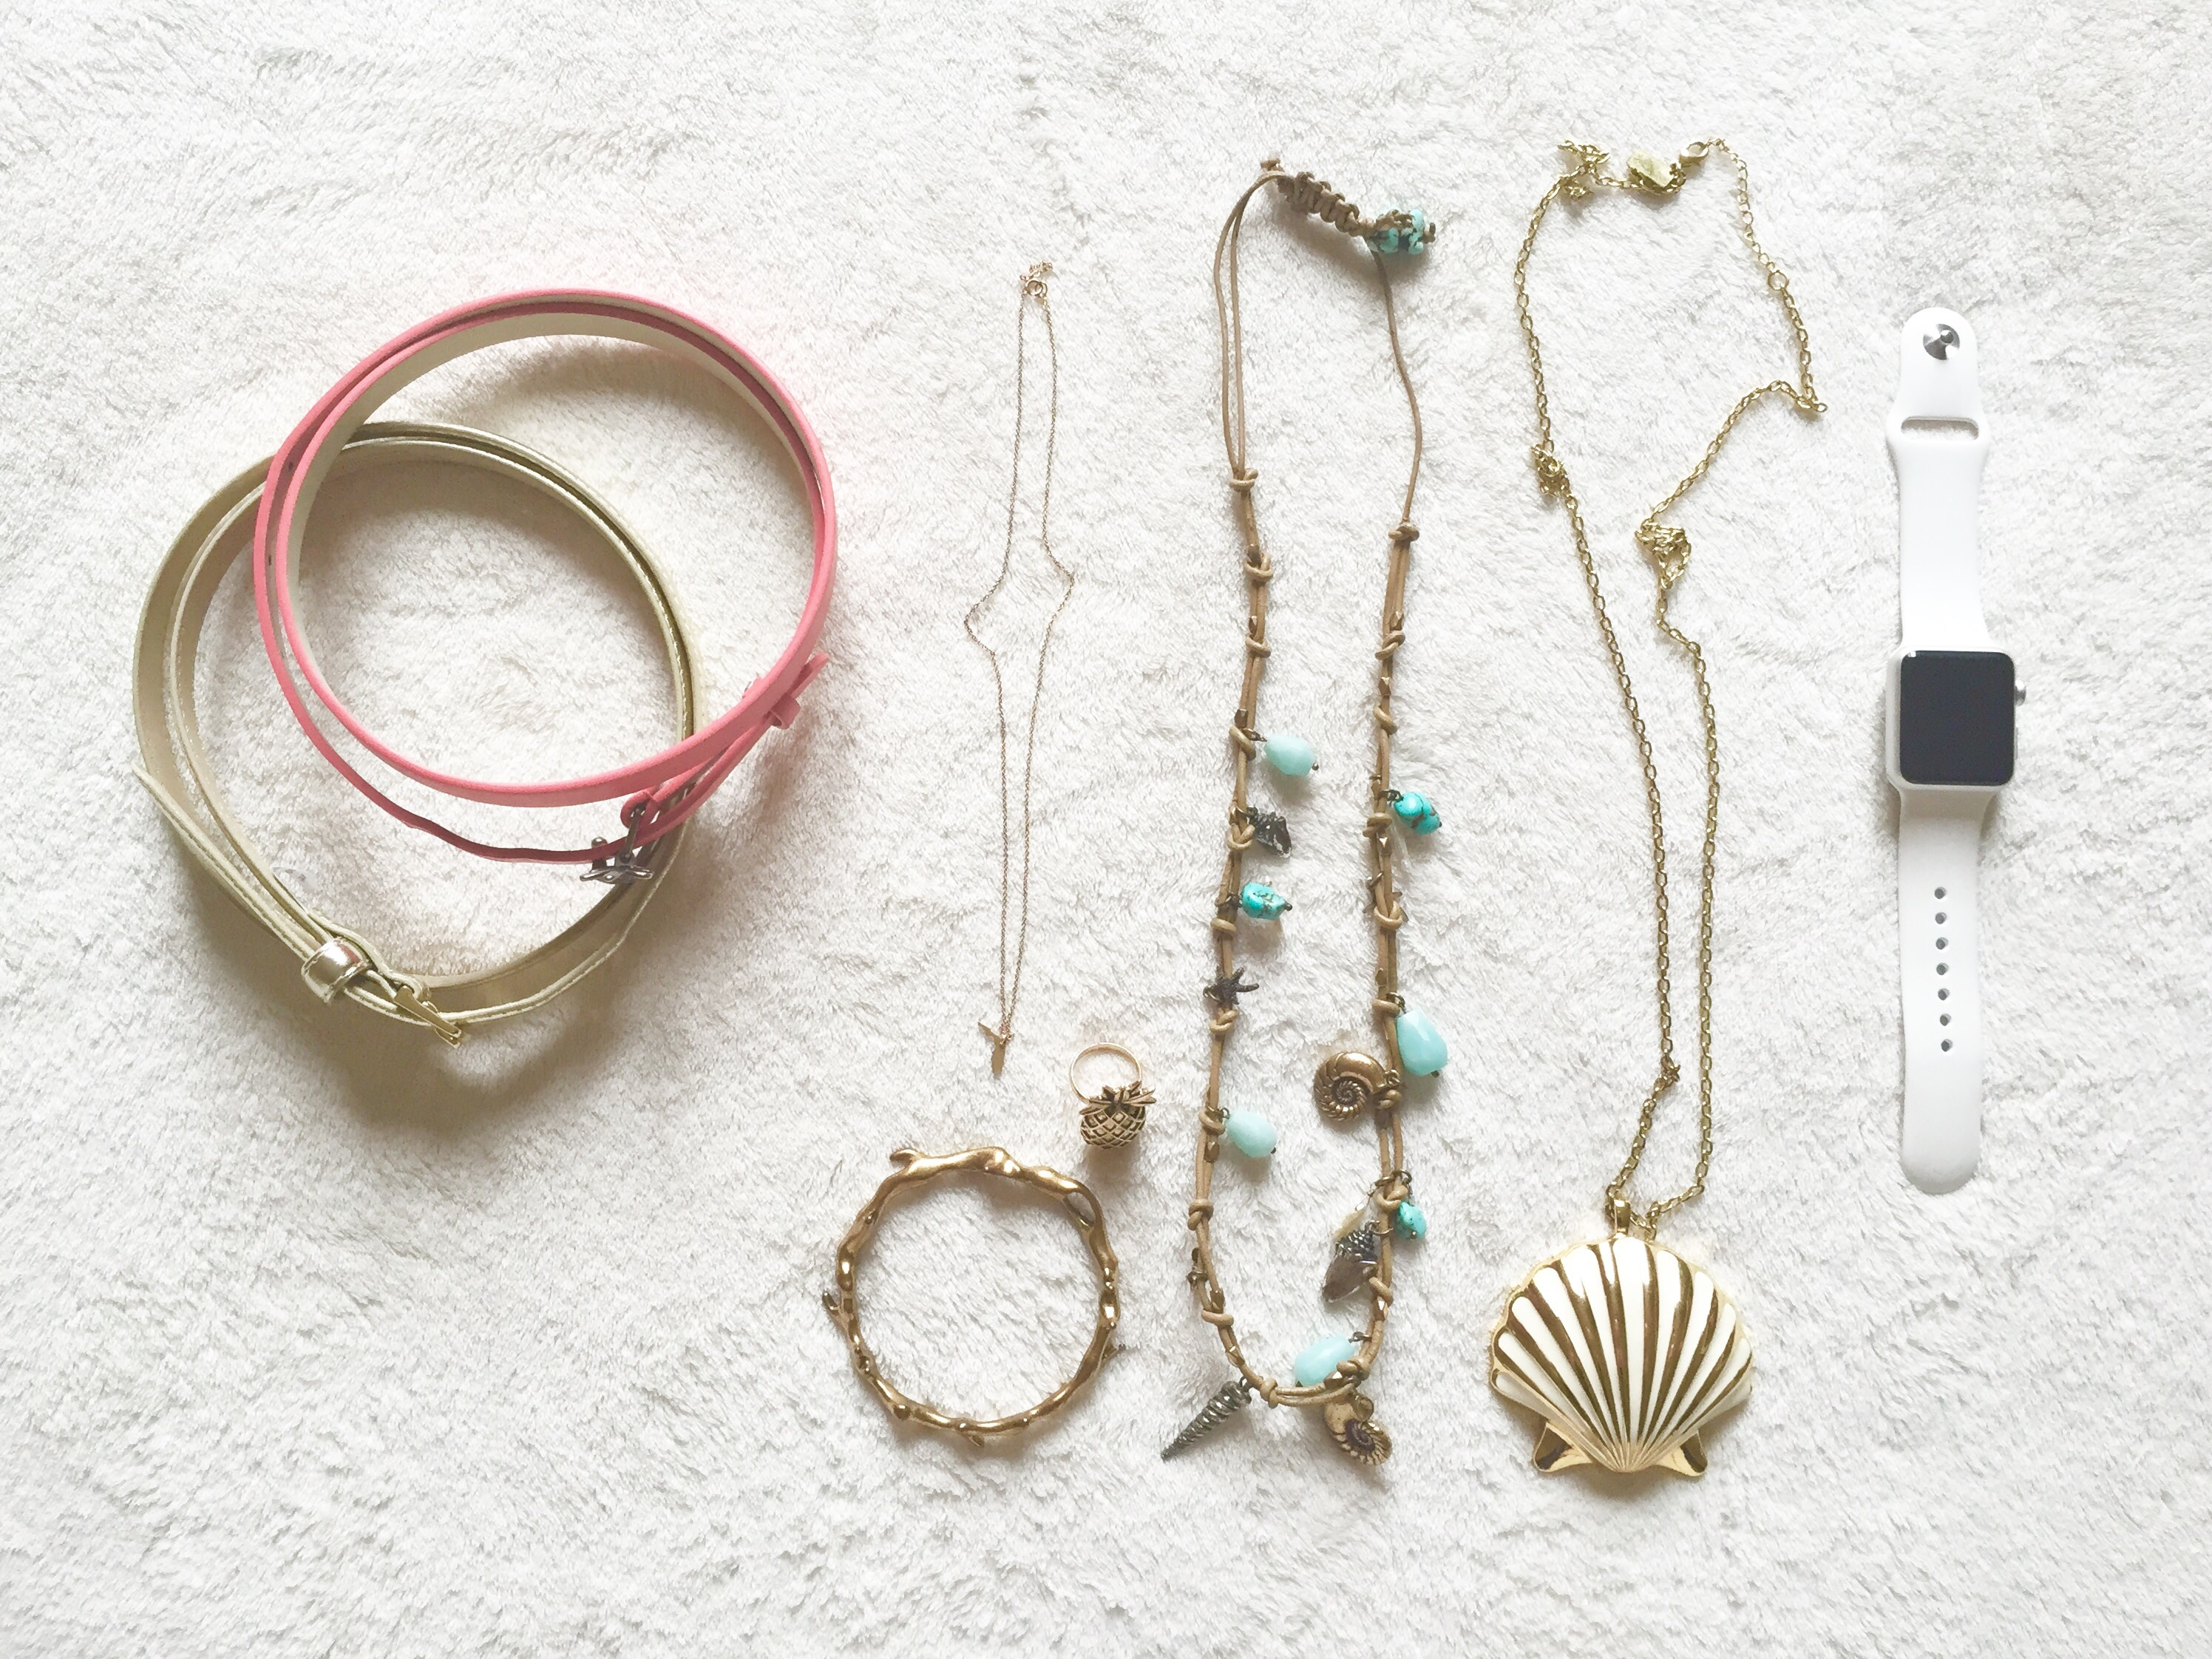 Coral Belt – Target  Gold Belt – Target  Charm Necklace – Dogeared  Gold  Bracelet – Lucky Brand  Pineapple Ring – Old Navy  Turquiose Charm  Necklace